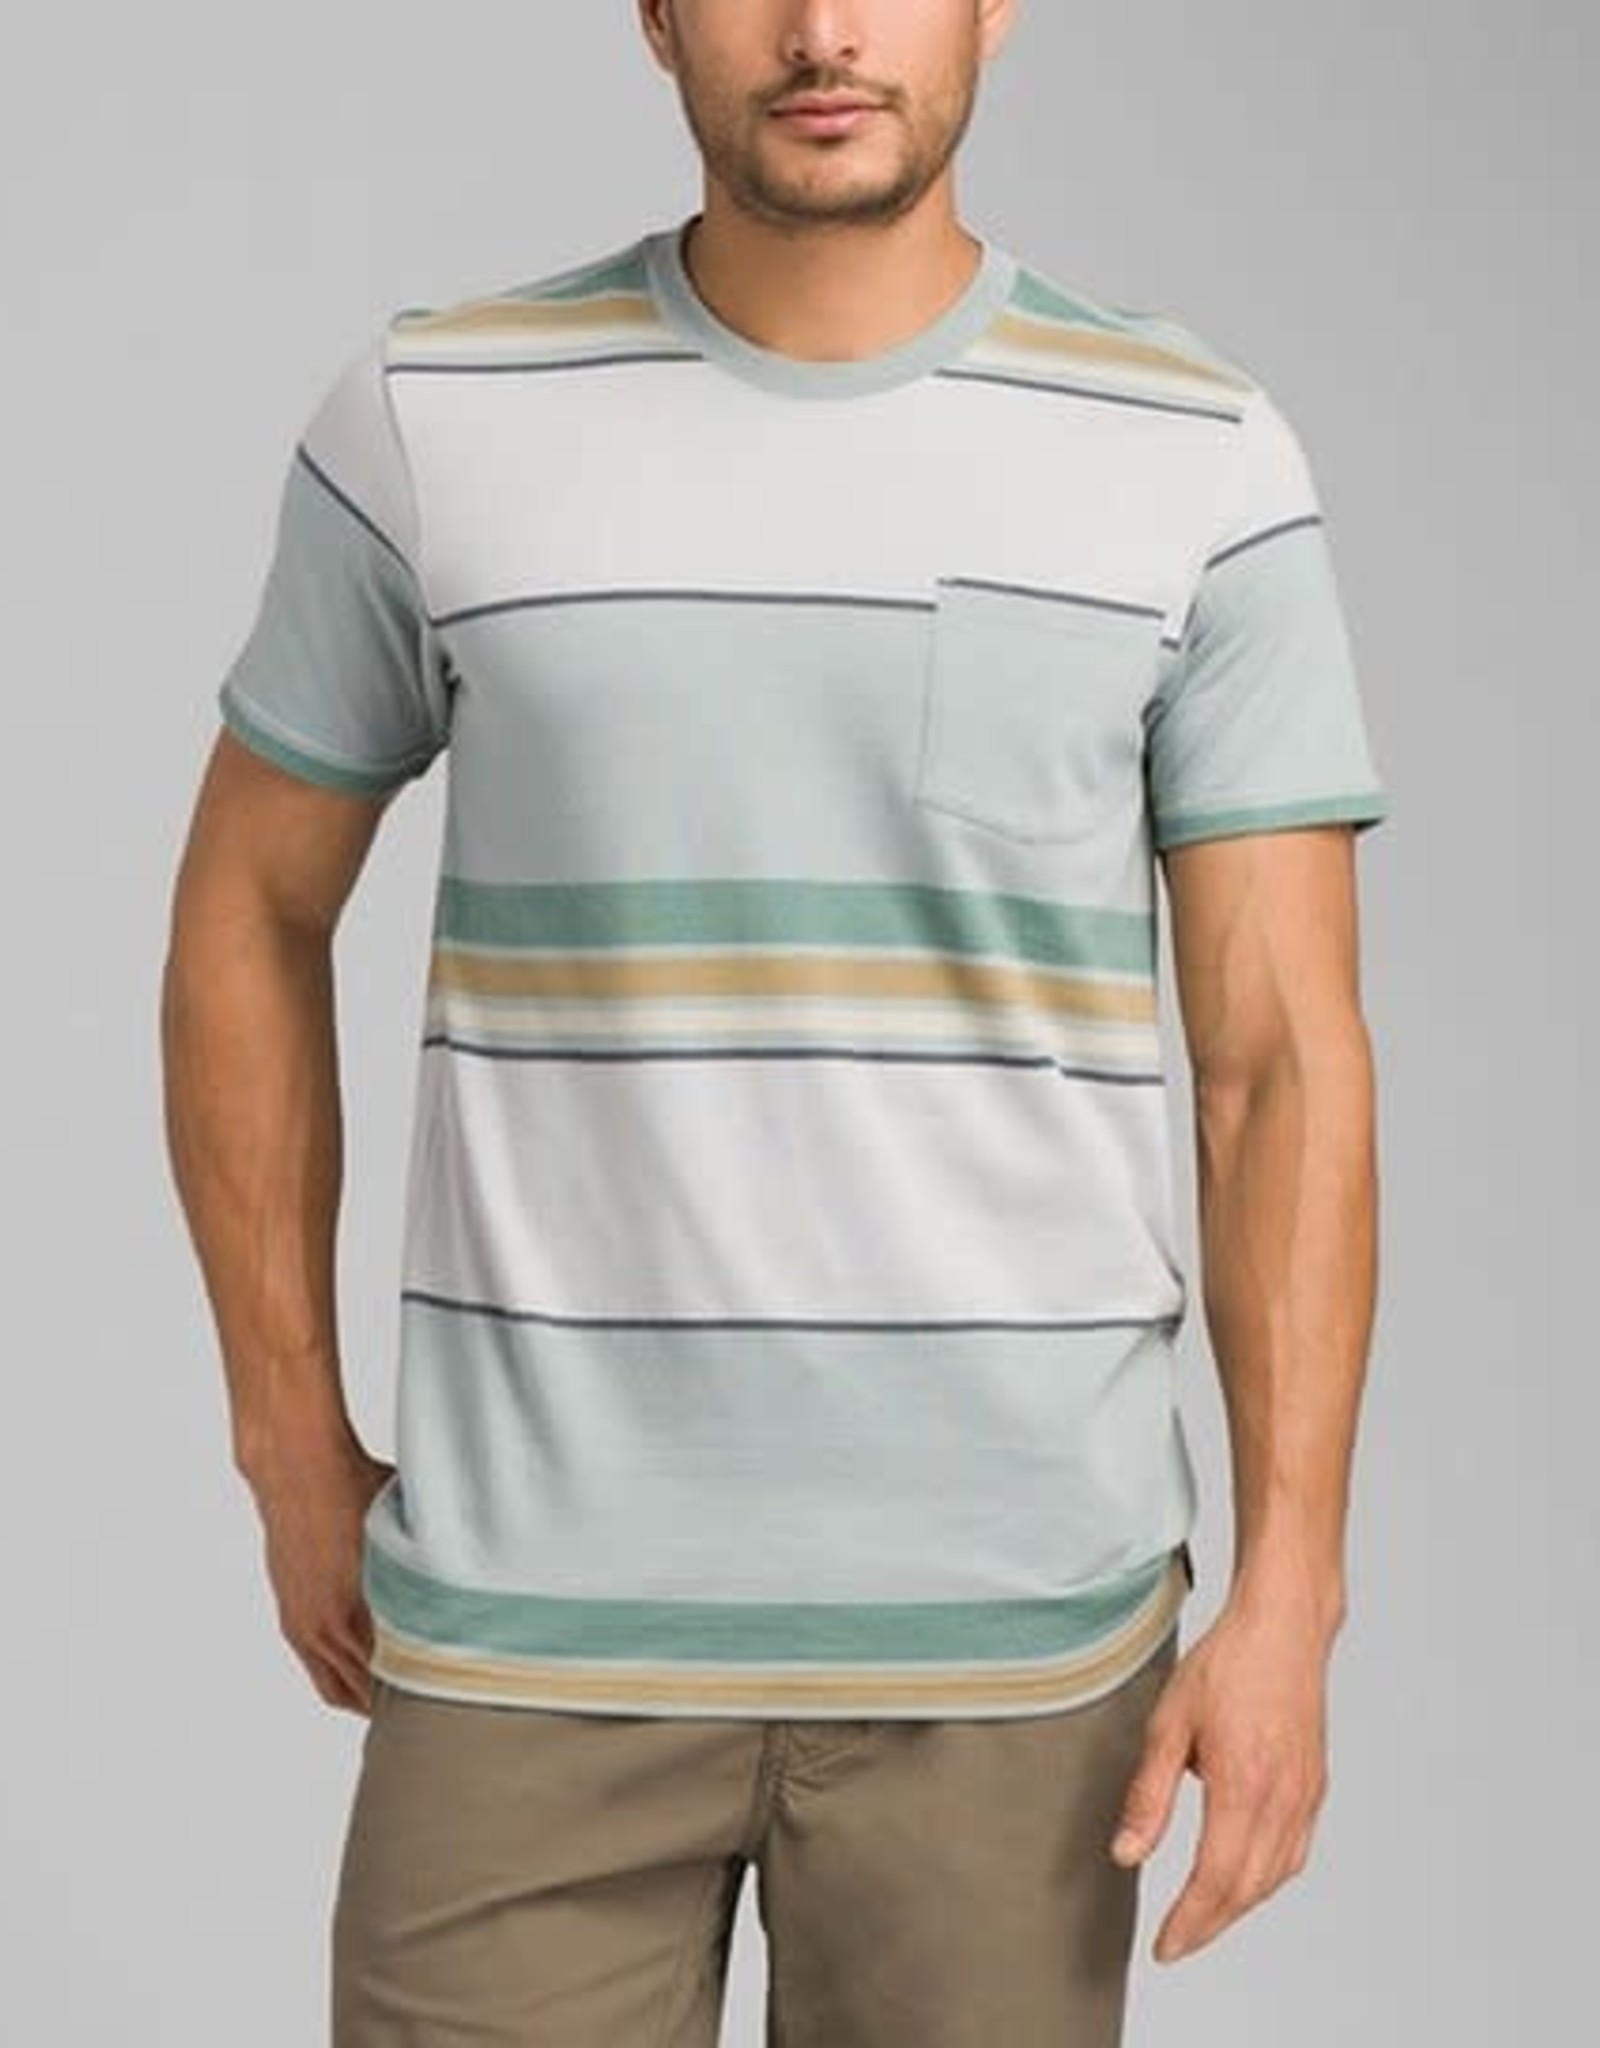 Prana Dominic shirt